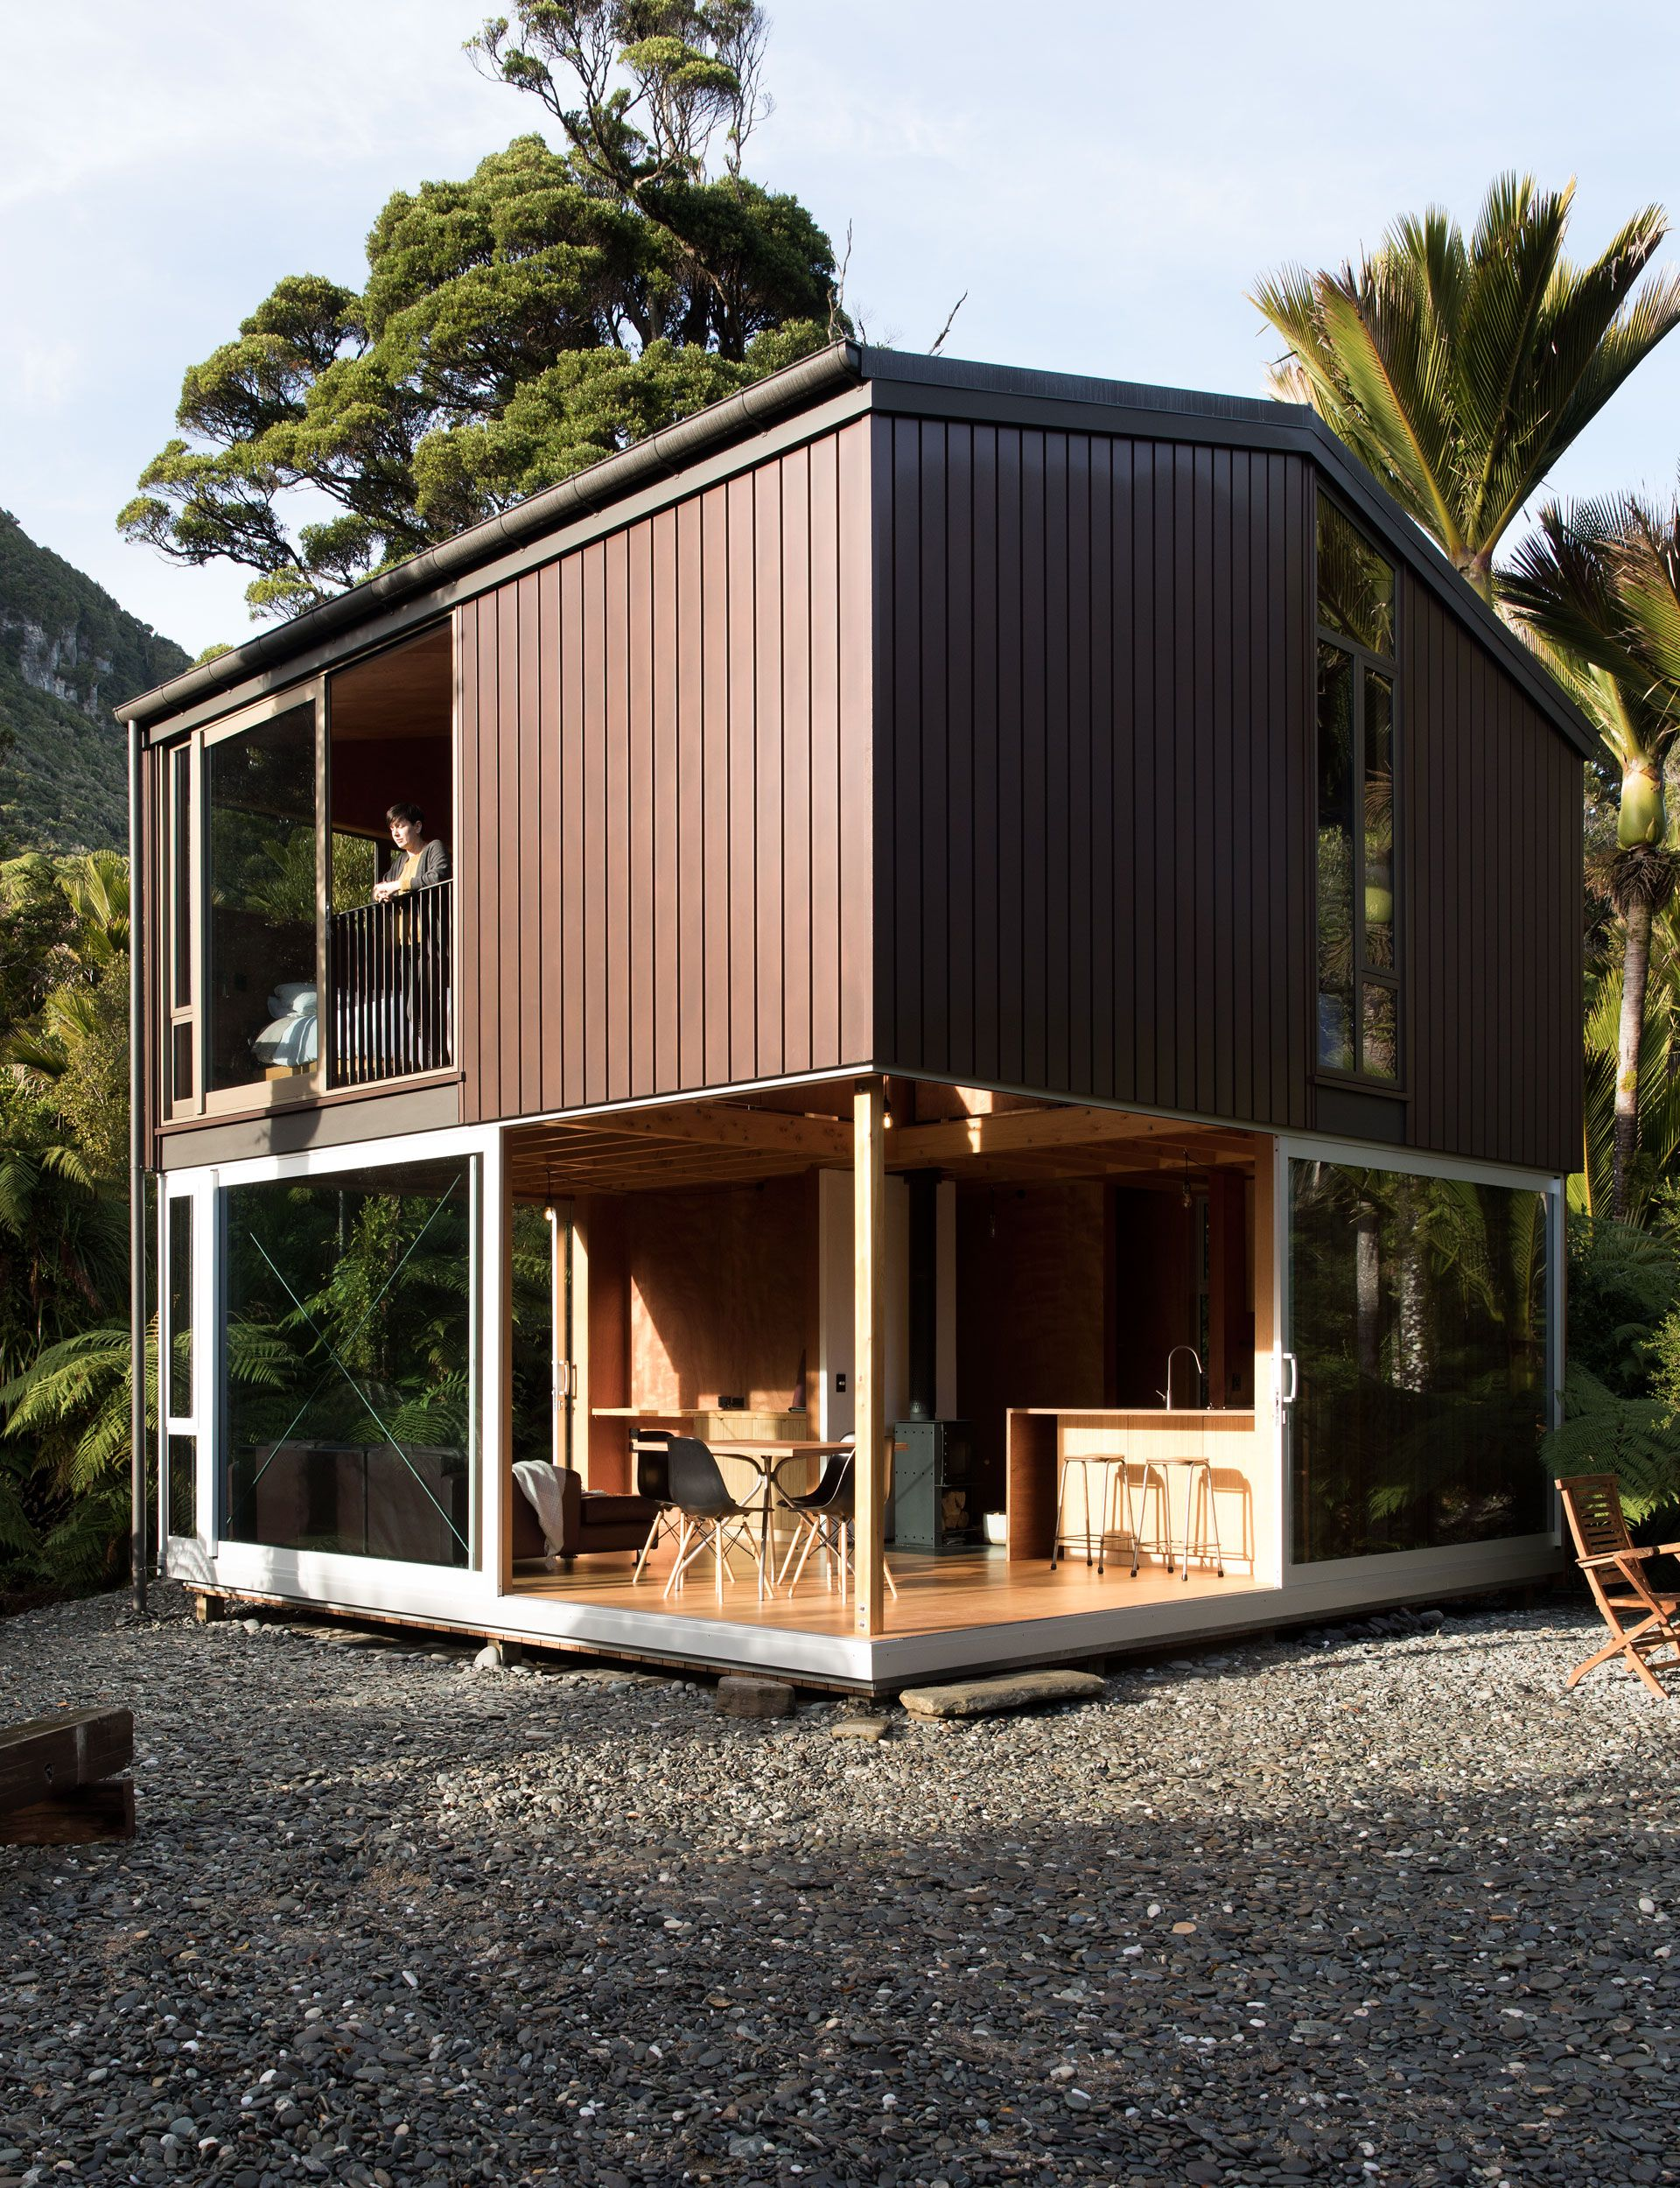 Attractive This Tiny 36 Square Metre Home Has The Most Inspiring Design